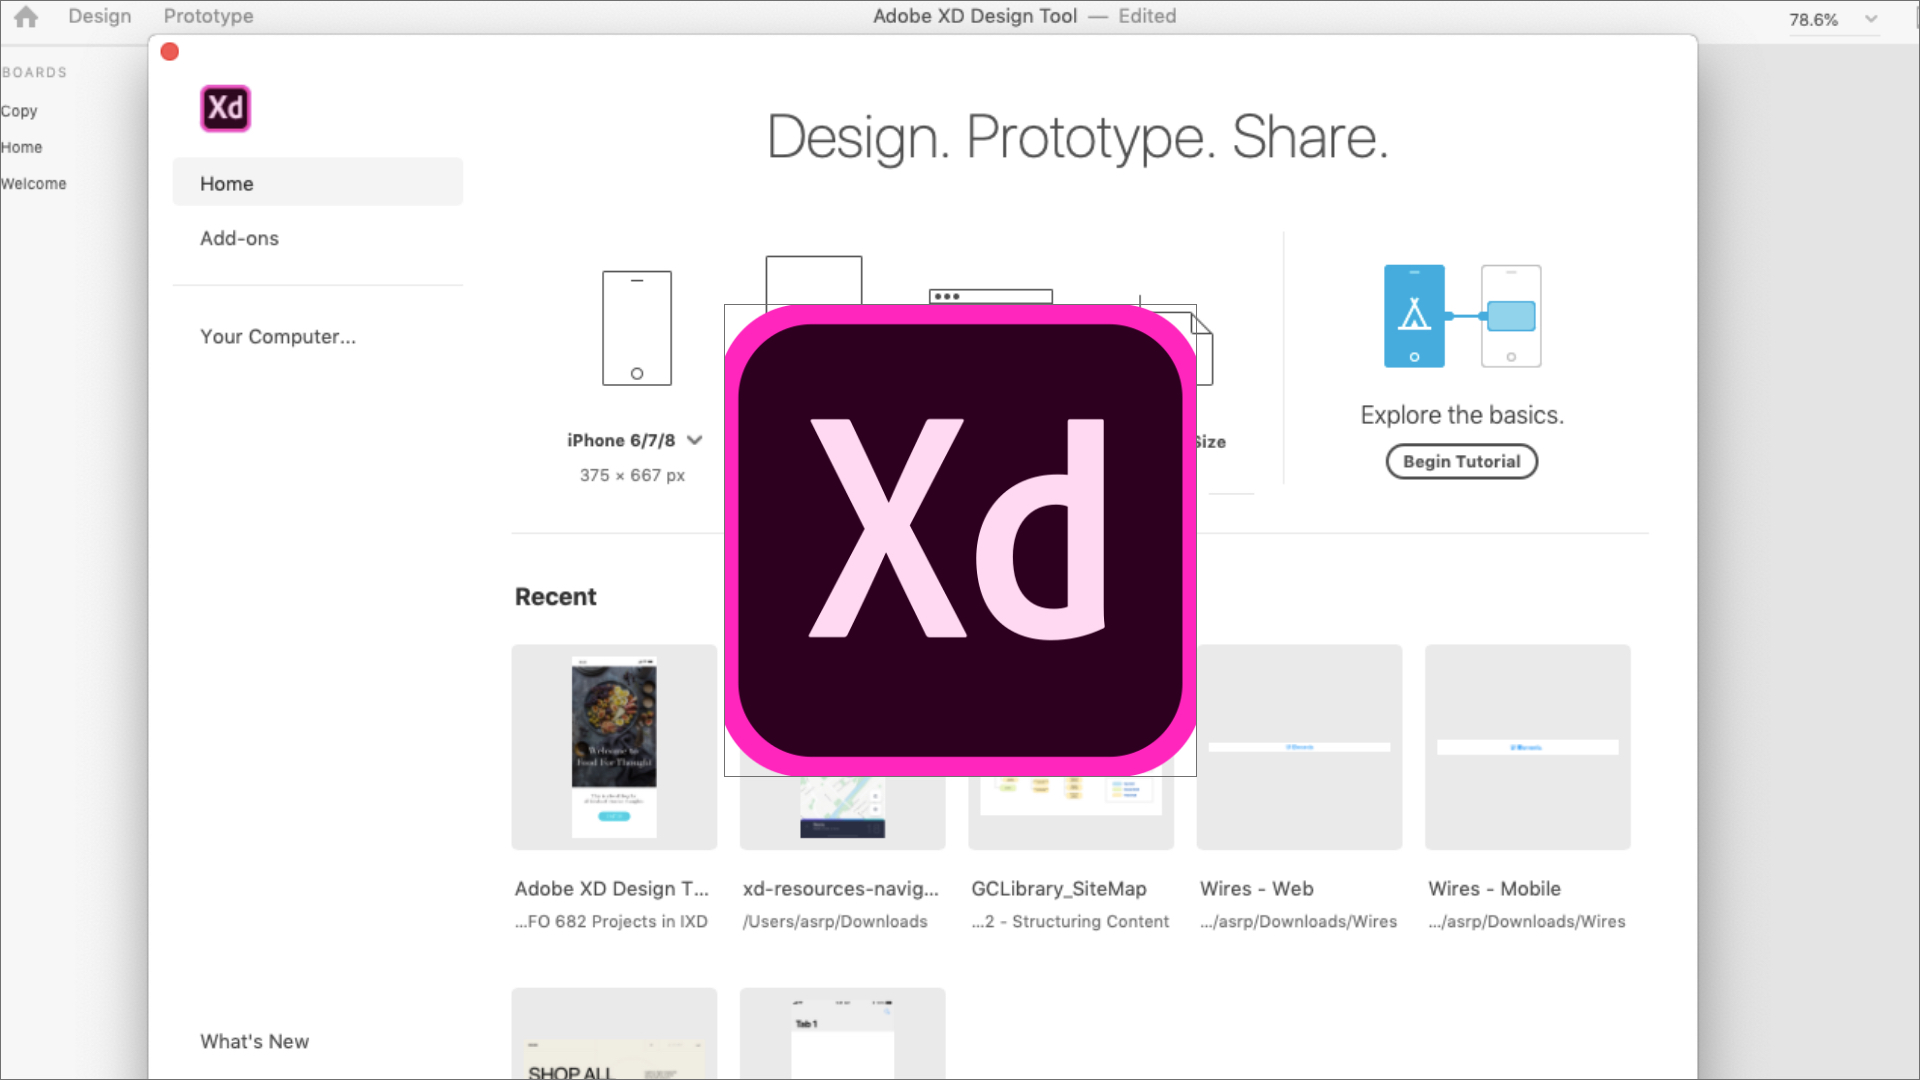 Adobe XD Design Tool: A Brief Overview and Helpful Features